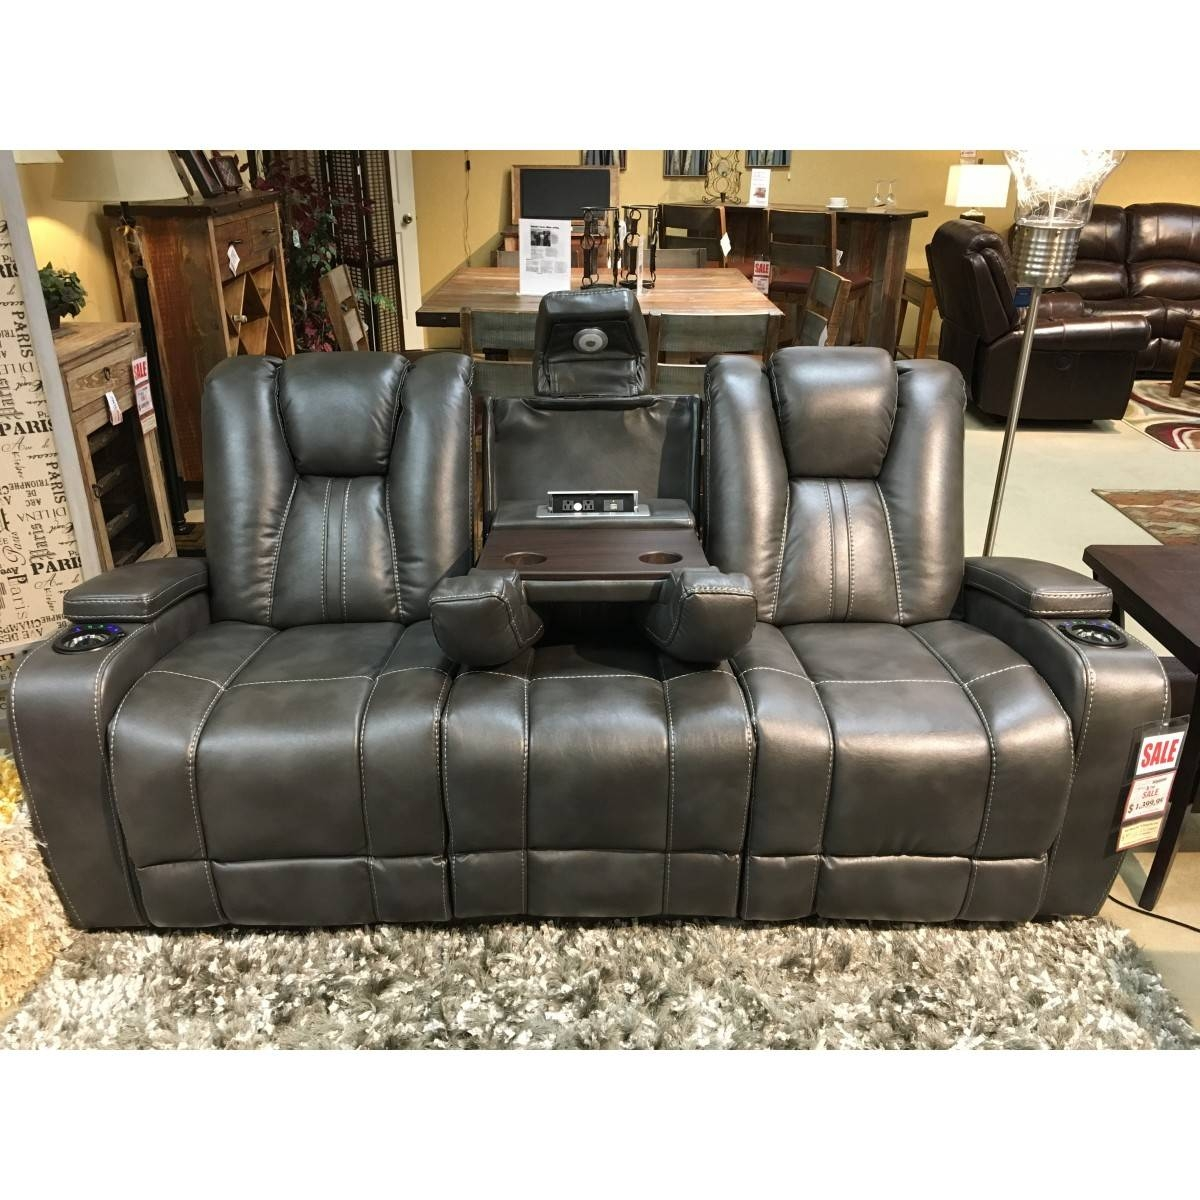 Furniture Bolero Slate Power Reclining Entertainment Sofa with Cheers Recliner Sofas (Image 4 of 15)